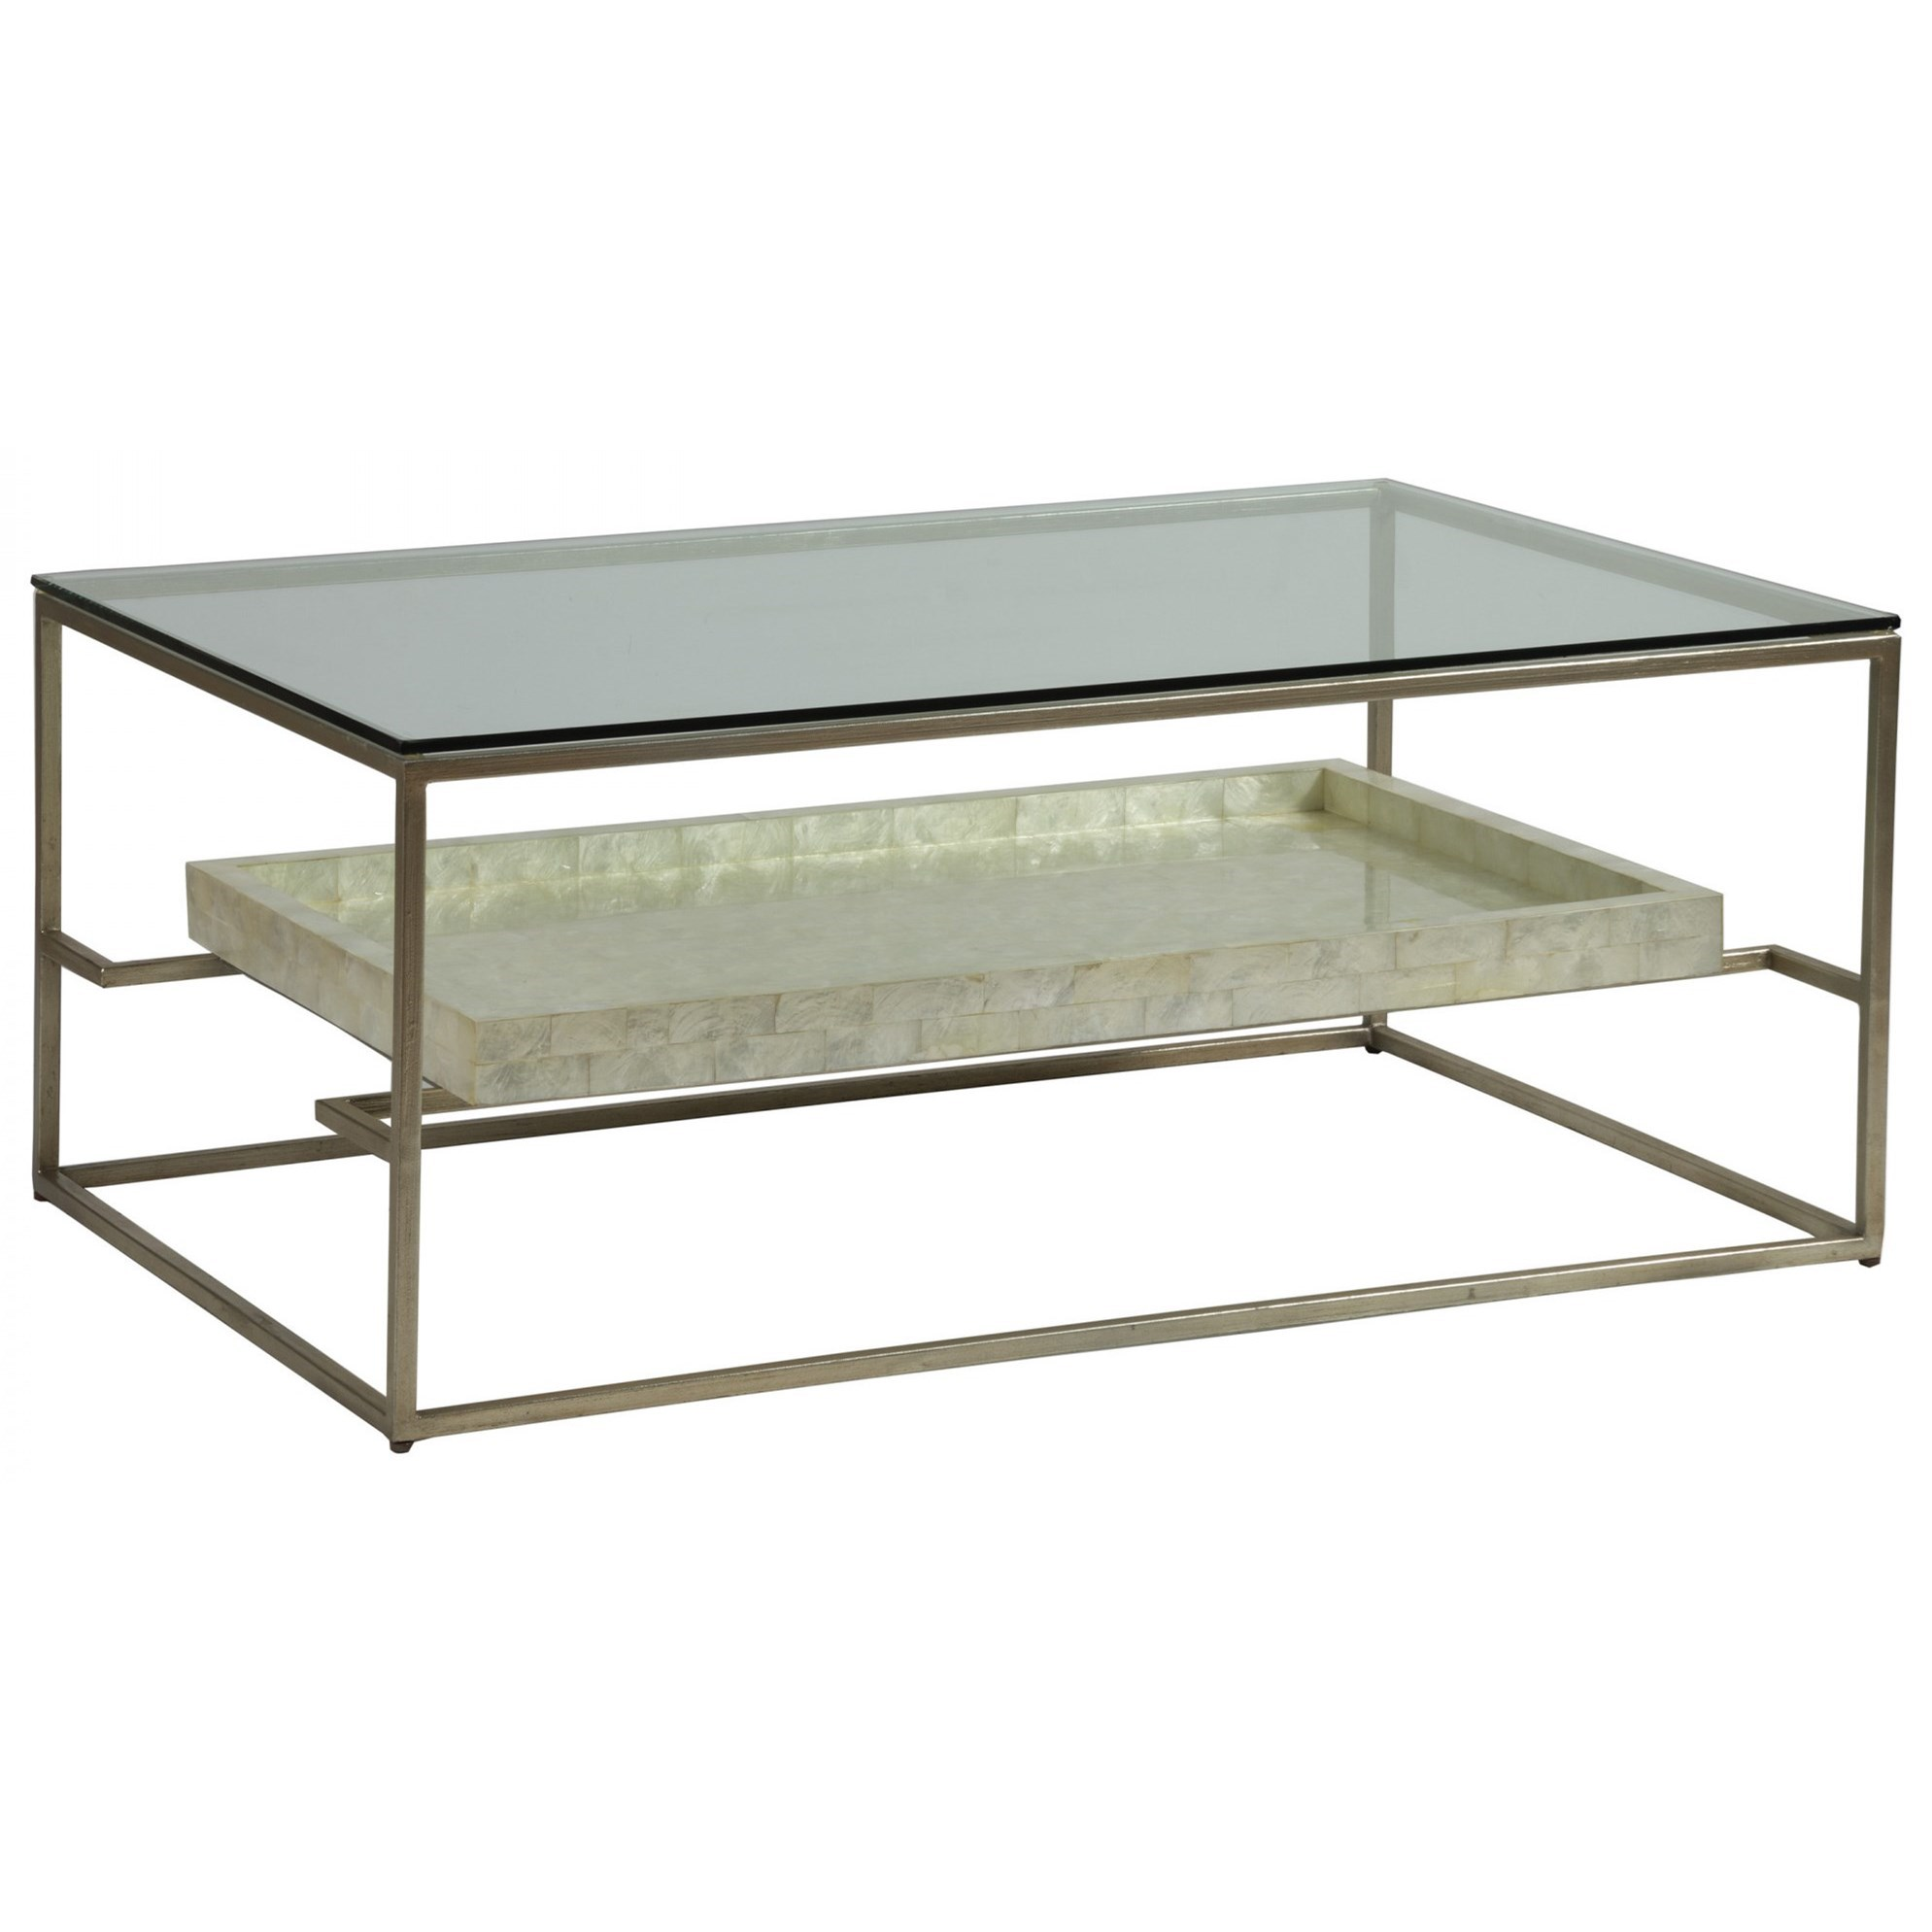 Cumulus Rectangular 45 Inch Cocktail Table by Artistica at Baer's Furniture